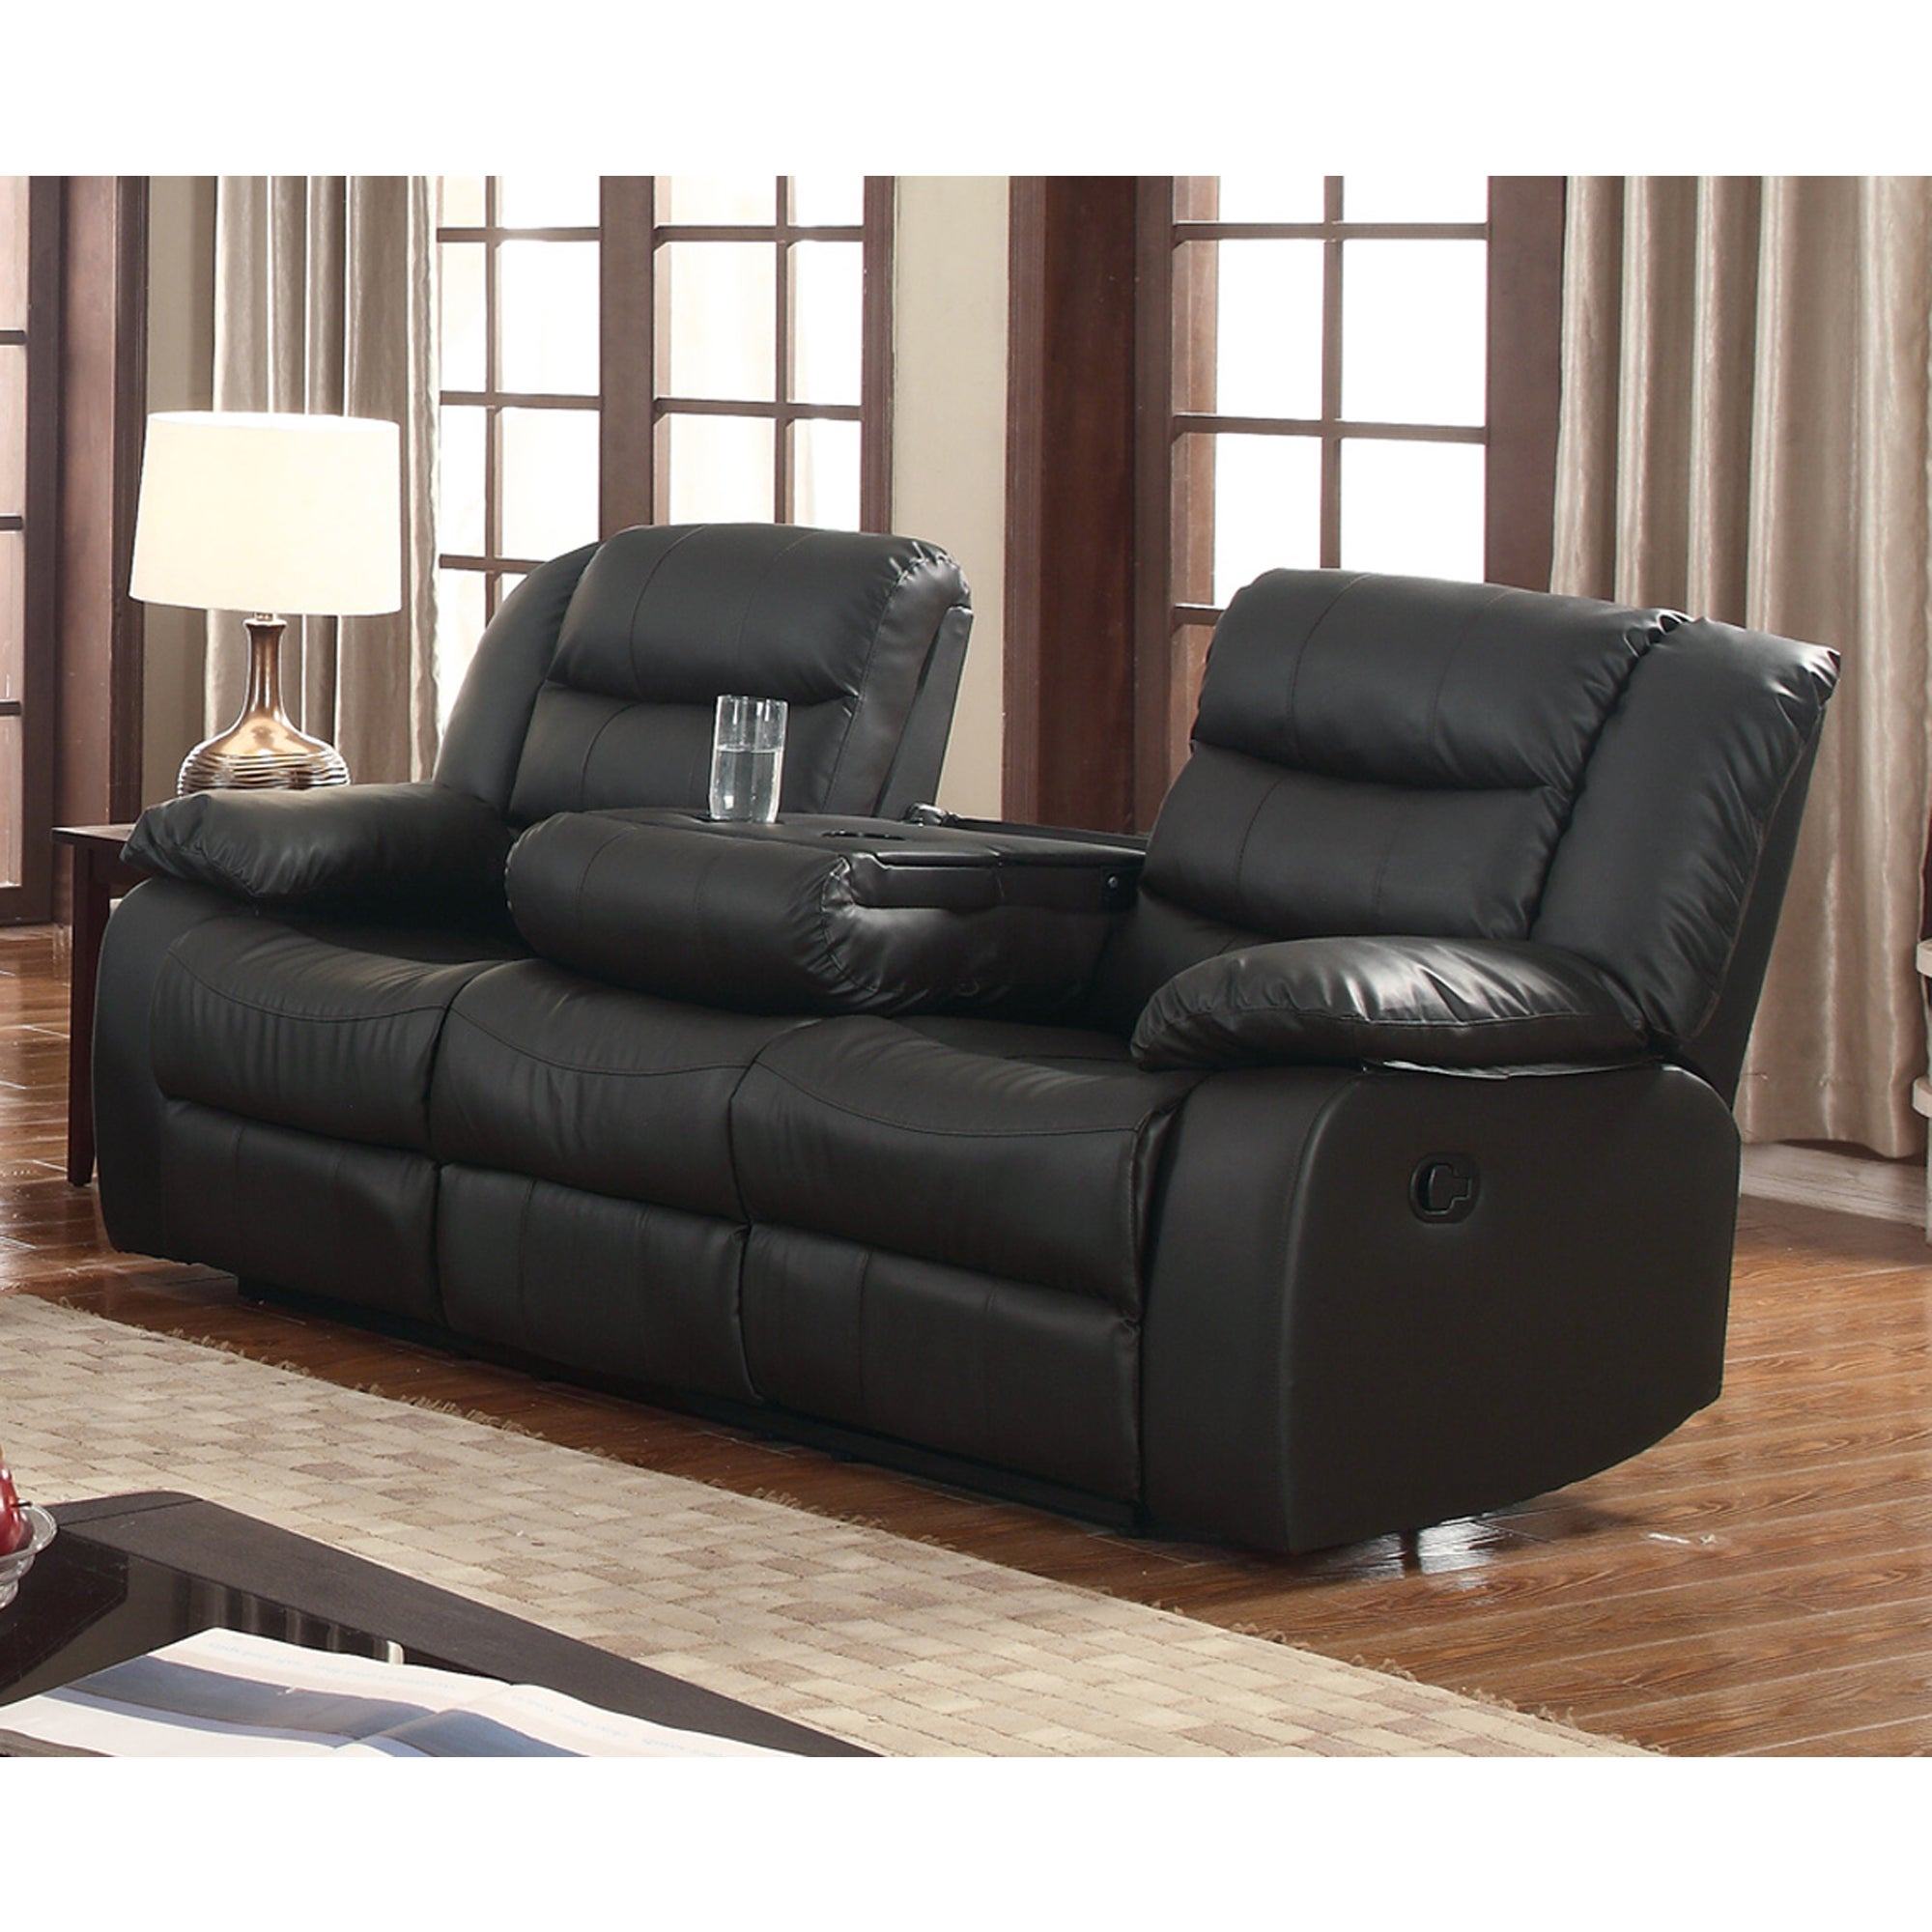 Gloria Faux Leather Living Room Reclining Sofa With Drop Down Table Free Shipping Today 19149261